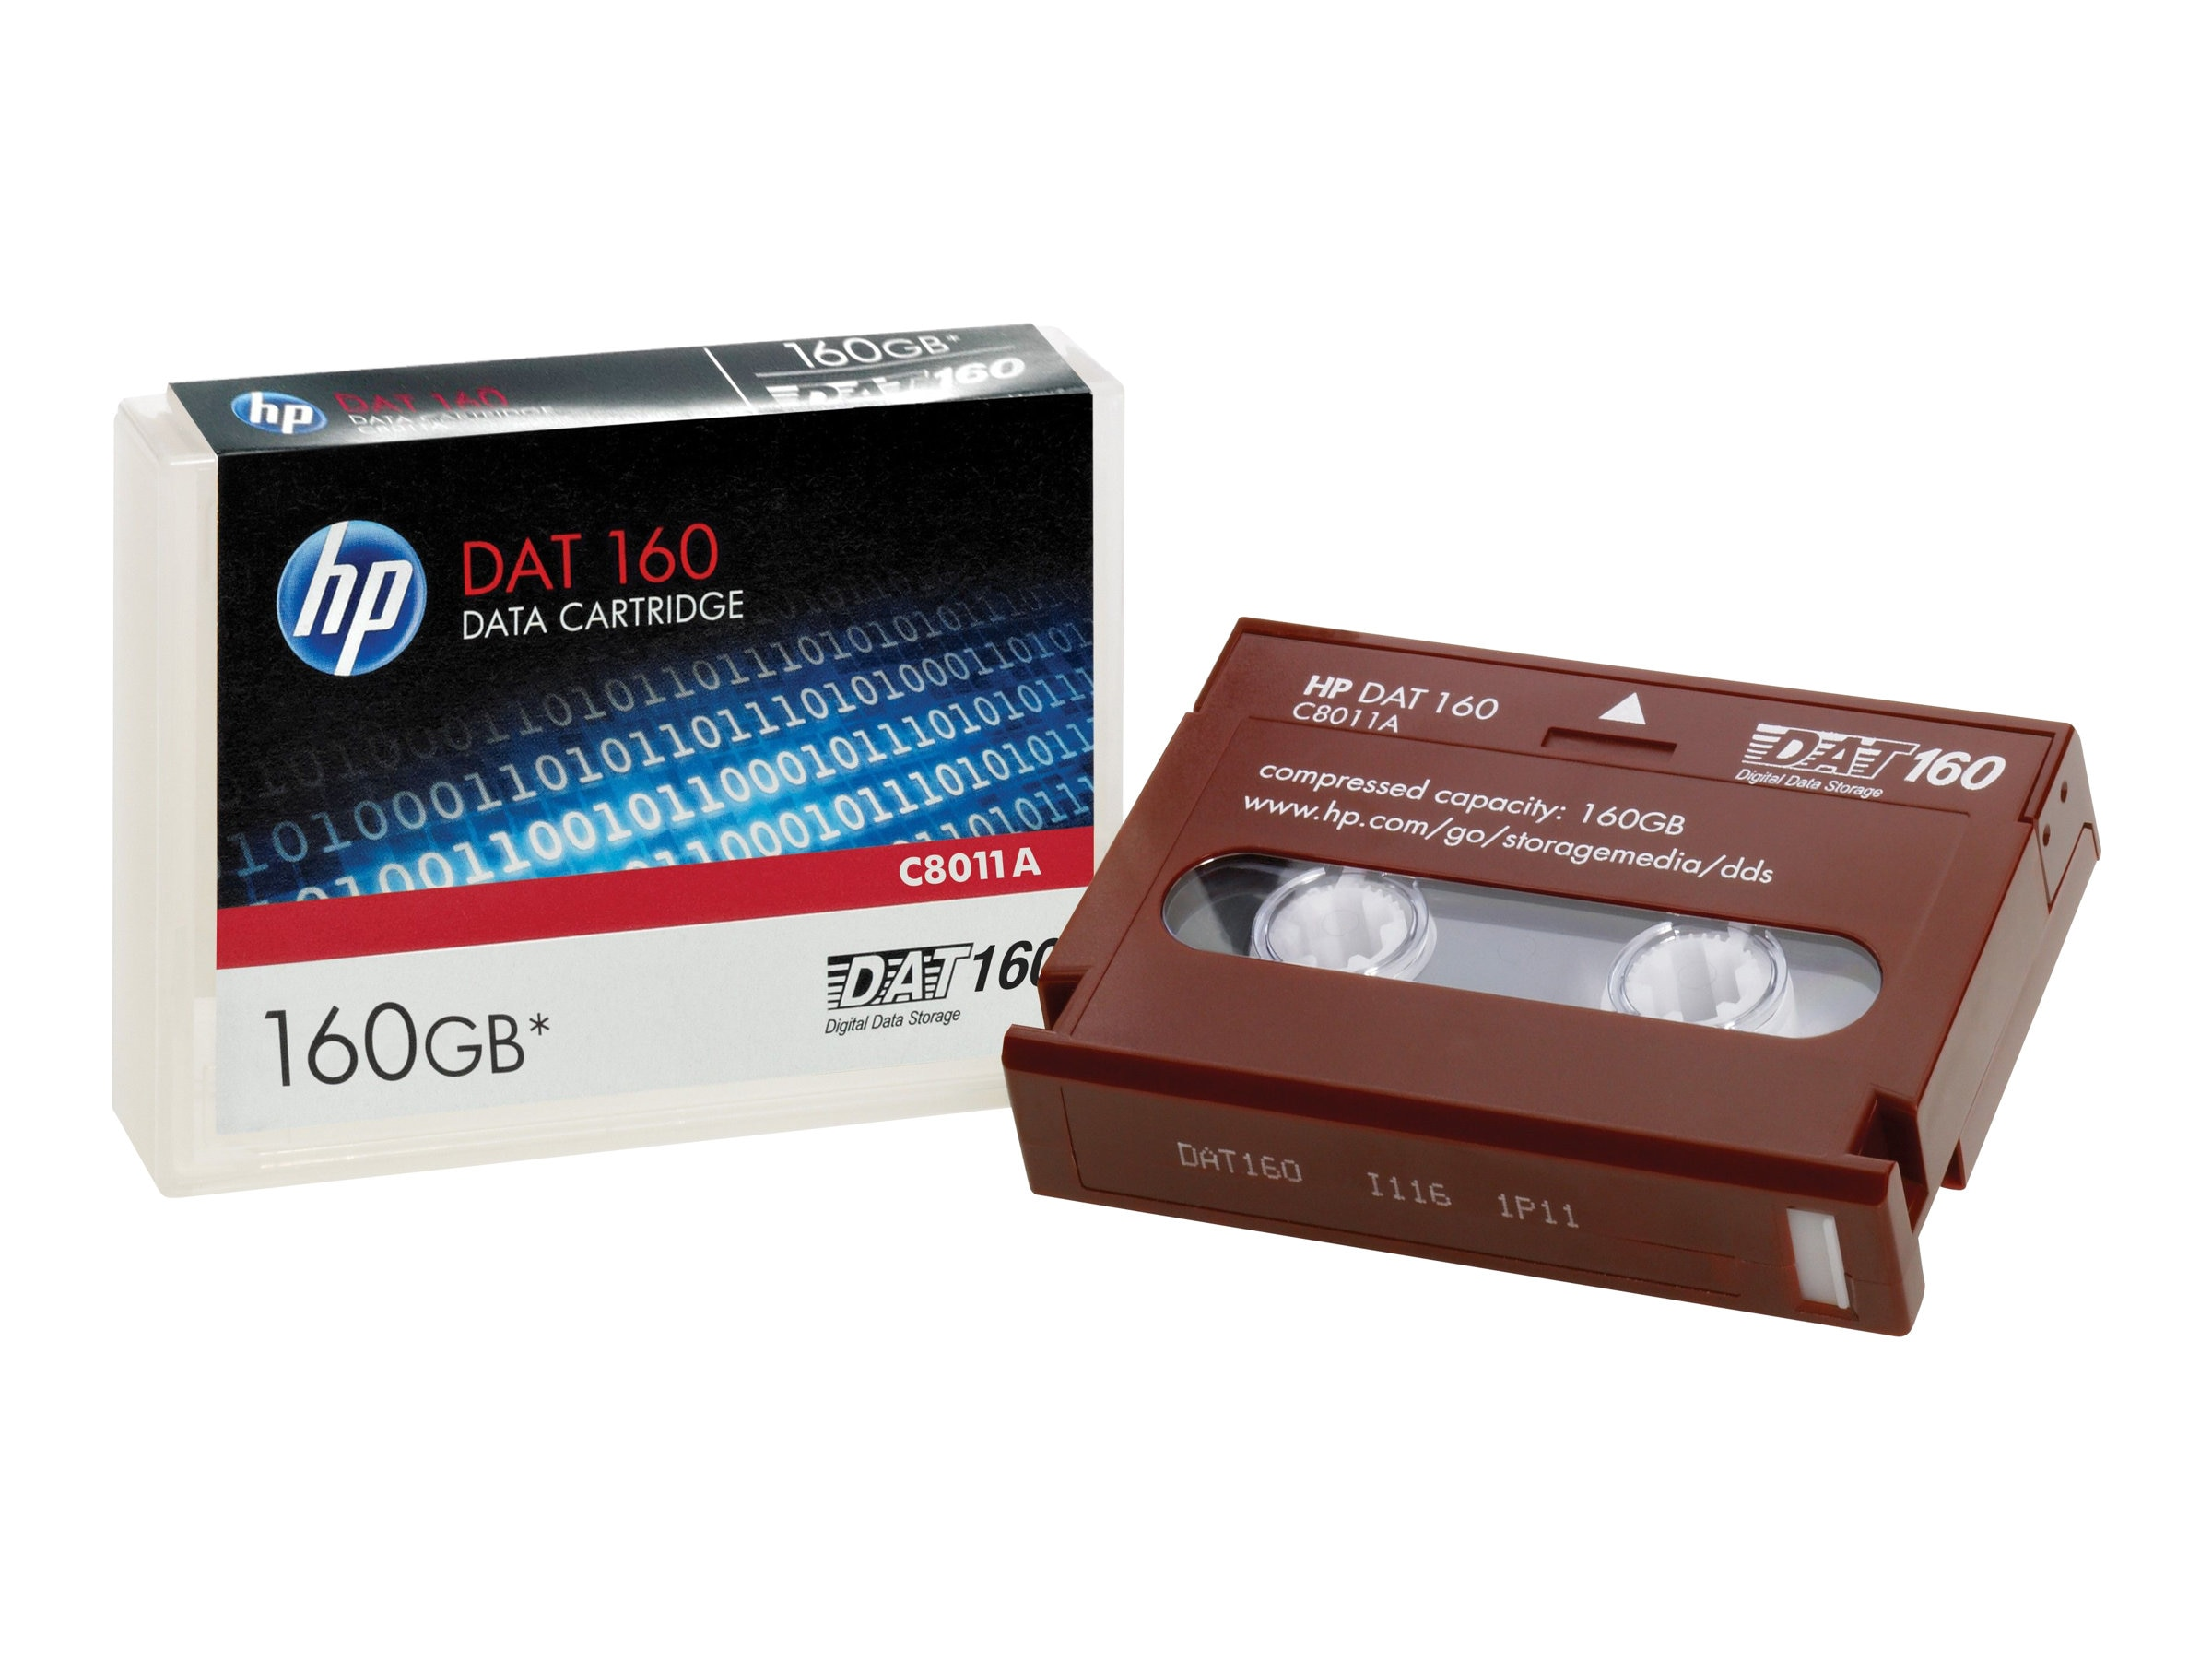 HPE DAT 160 Data Cartridge 160GB